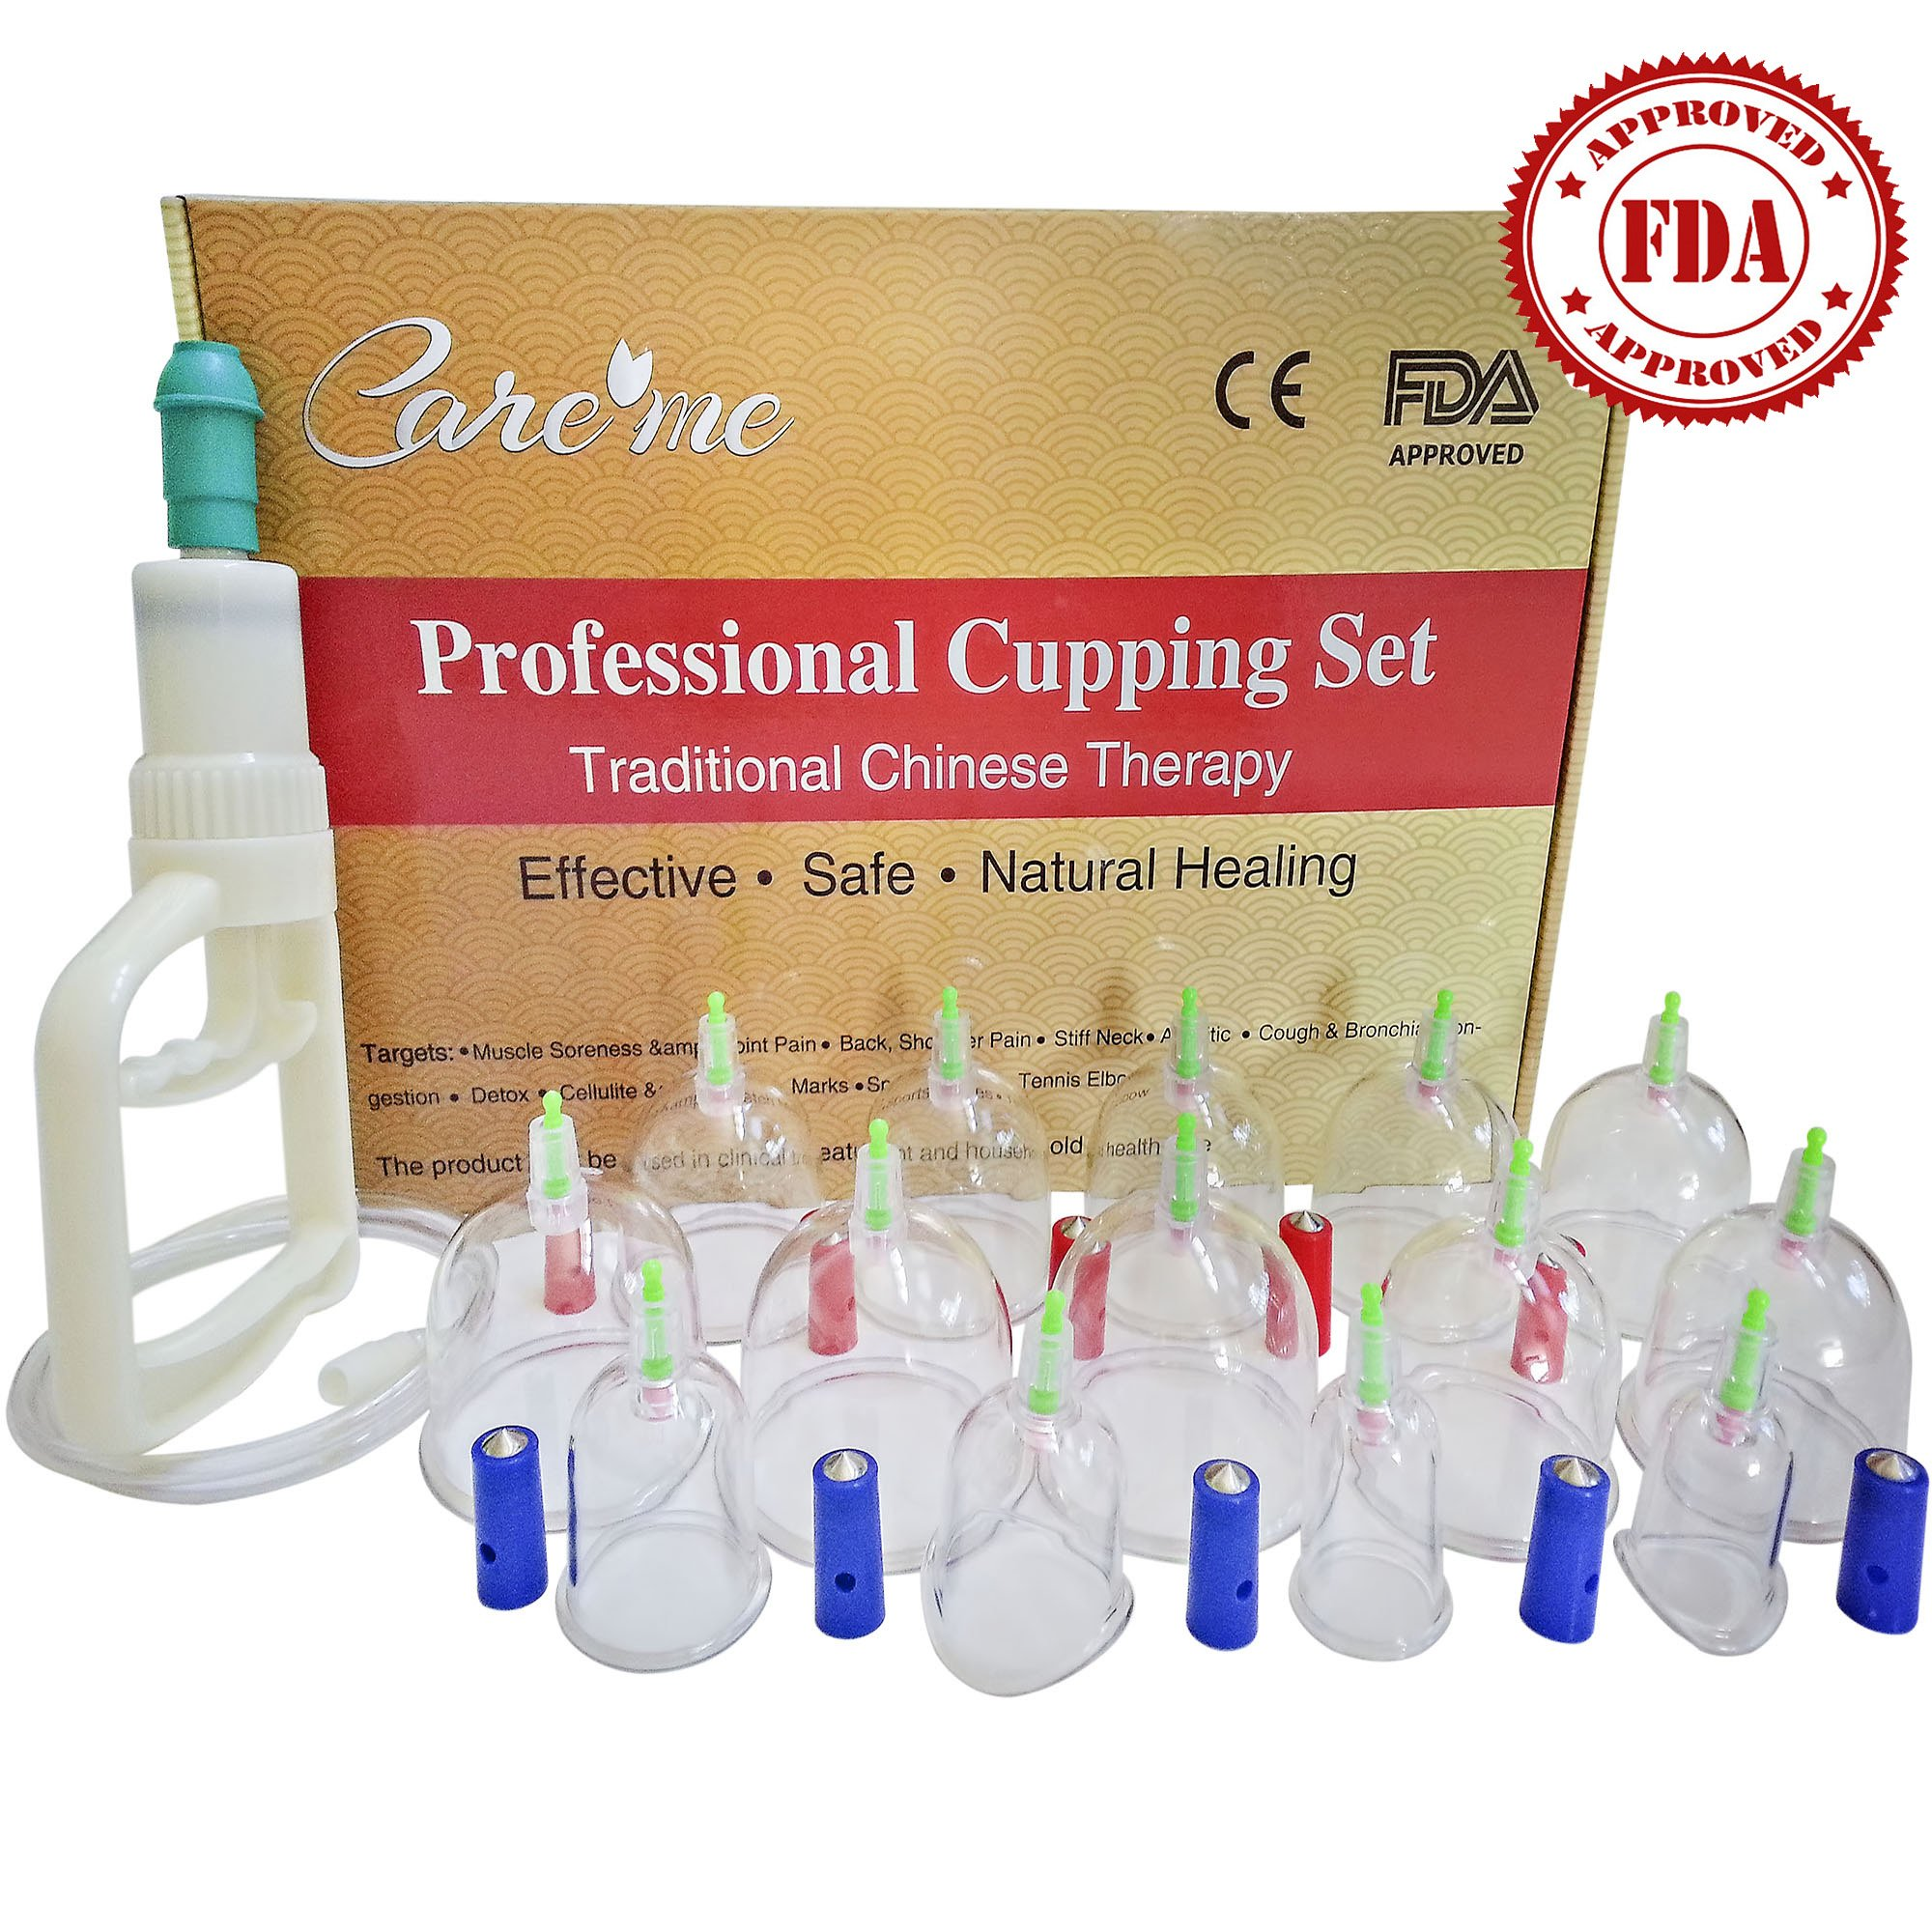 Chinese Acupuncture Cupping Therapy Set-FDA Approved Medical Grade Professional Cupping Kit (14 cups Guaranteed 5-Yr Life)For Body Massage, Pain Relief, Physical Therapy–Improve Your Health & Wellness